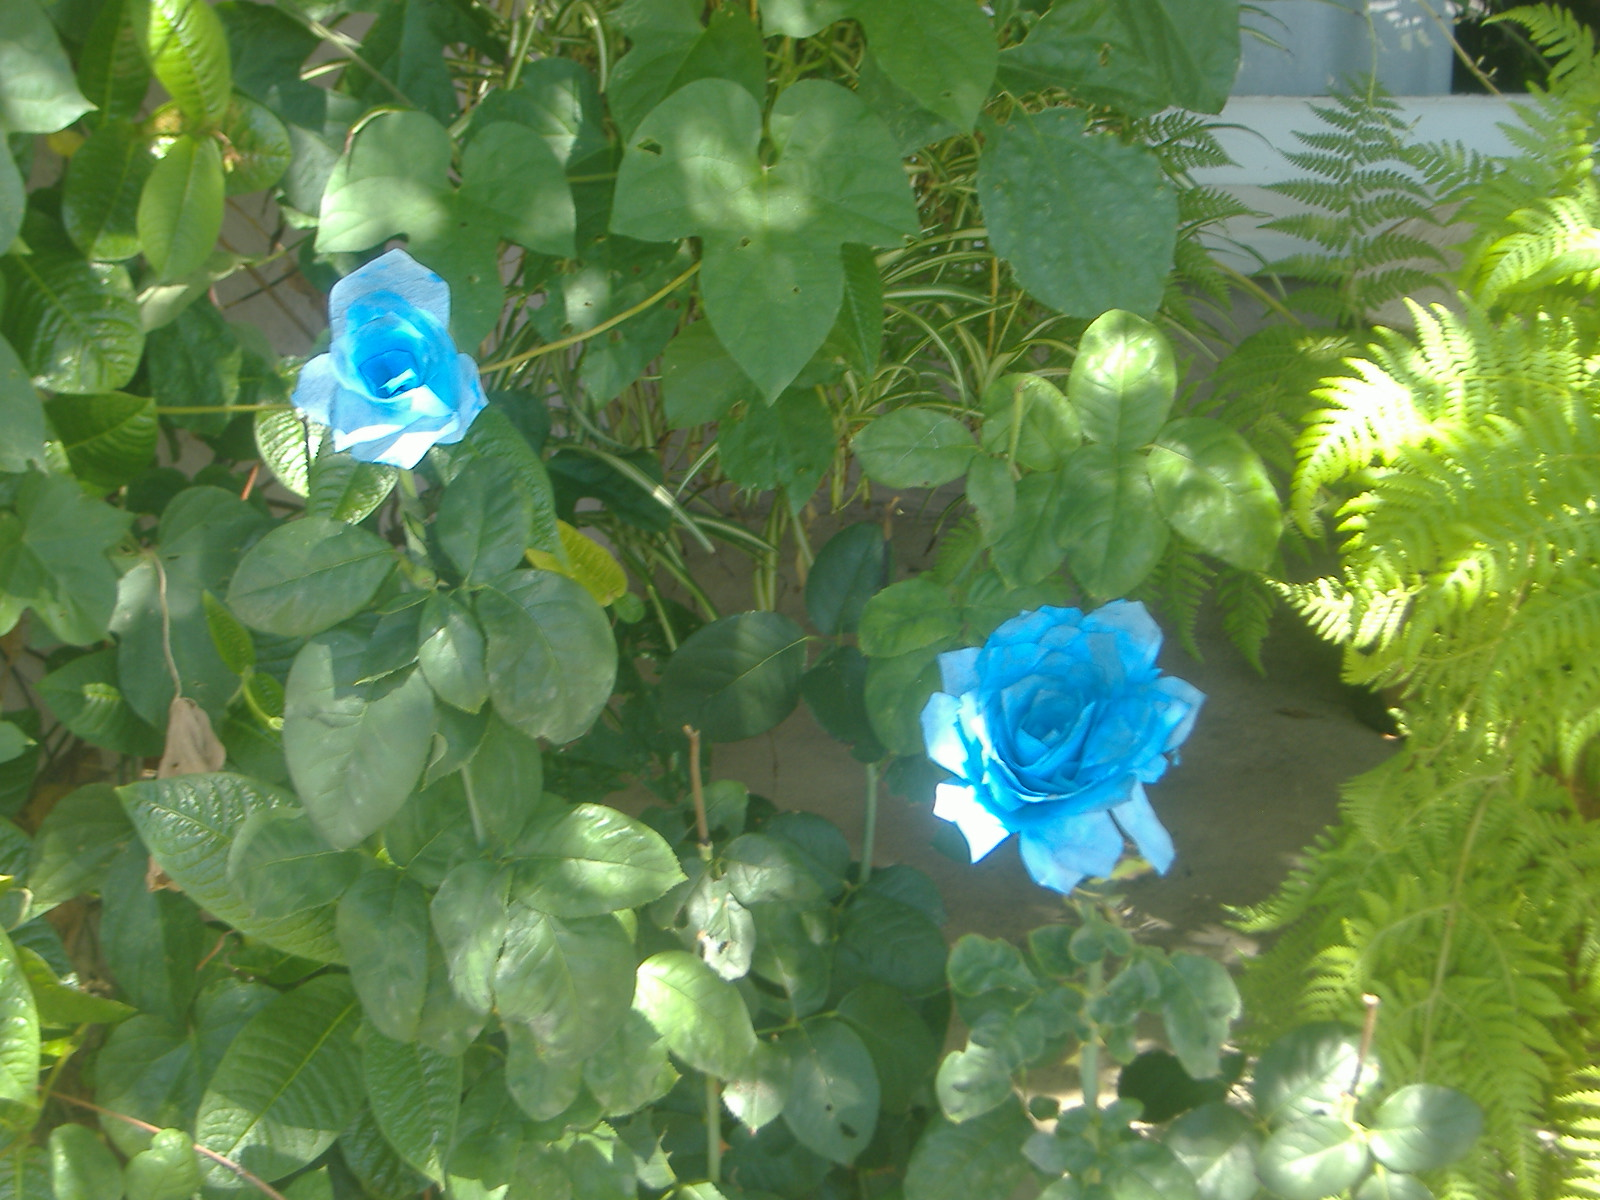 Blue roses by Hobz_the_destroyer